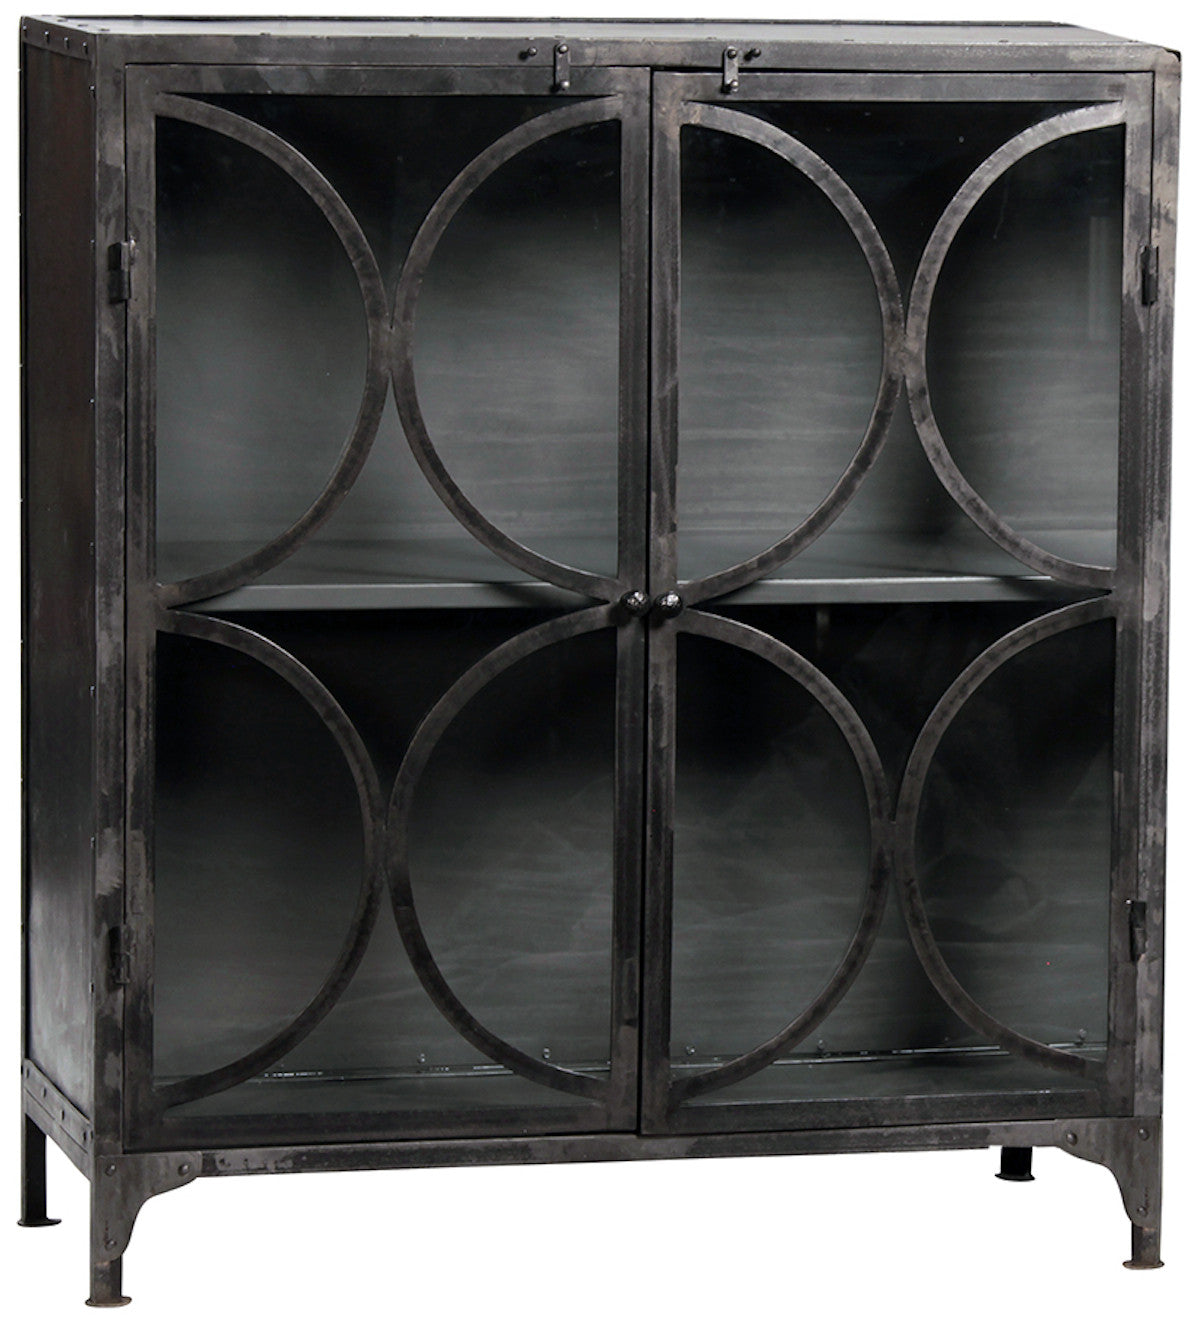 Delvin Metal Low Glass Bookcase, domAl272